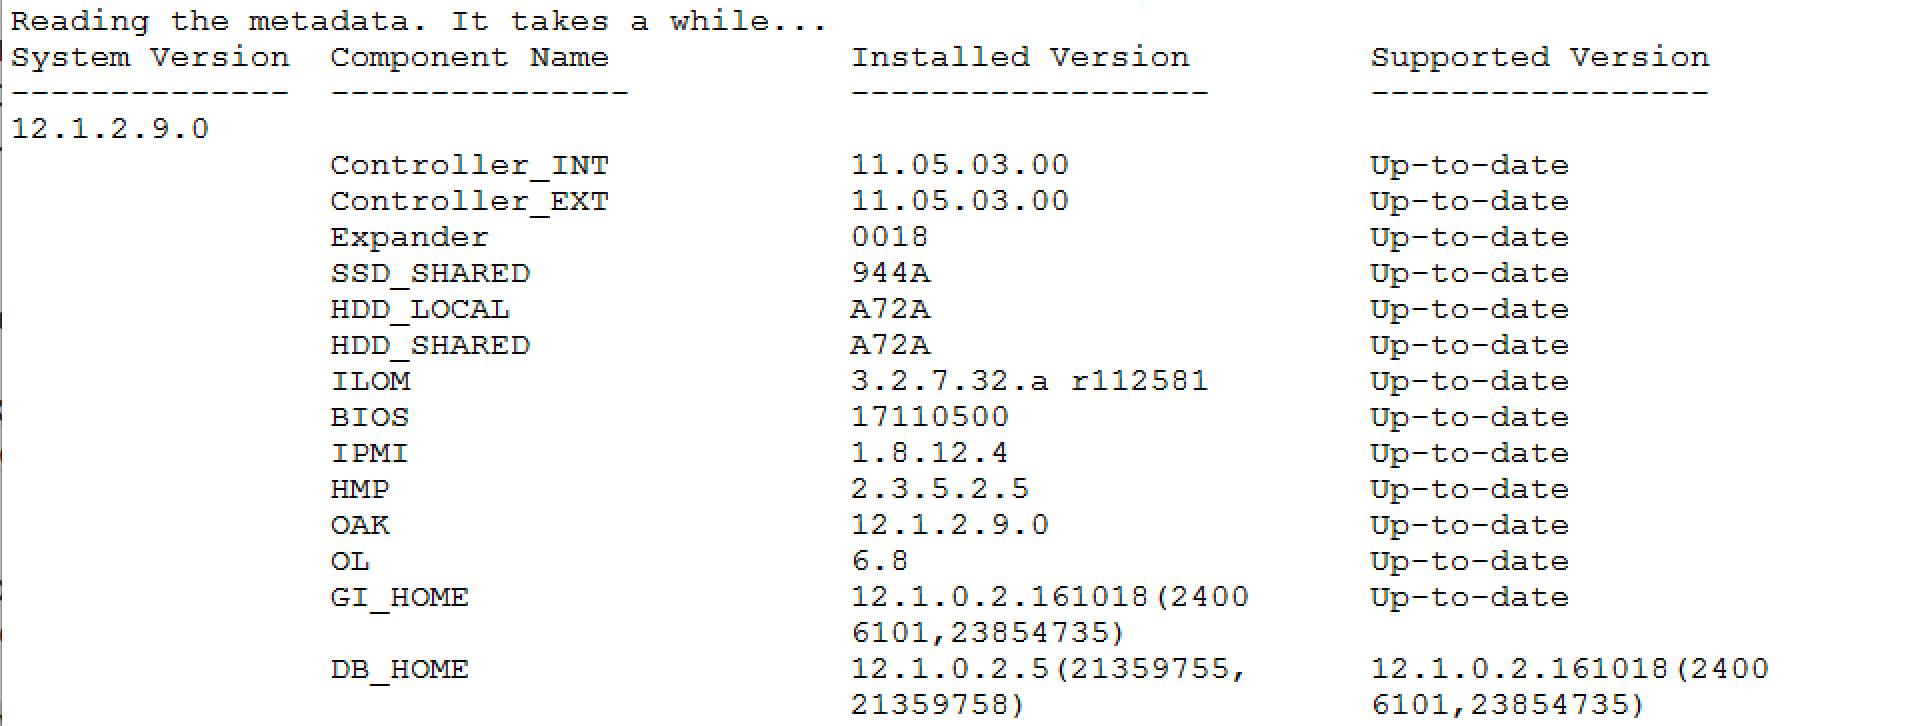 Configuring ASR Manager on Oracle ODA version 12 1 2 9 0 (SNMP v3